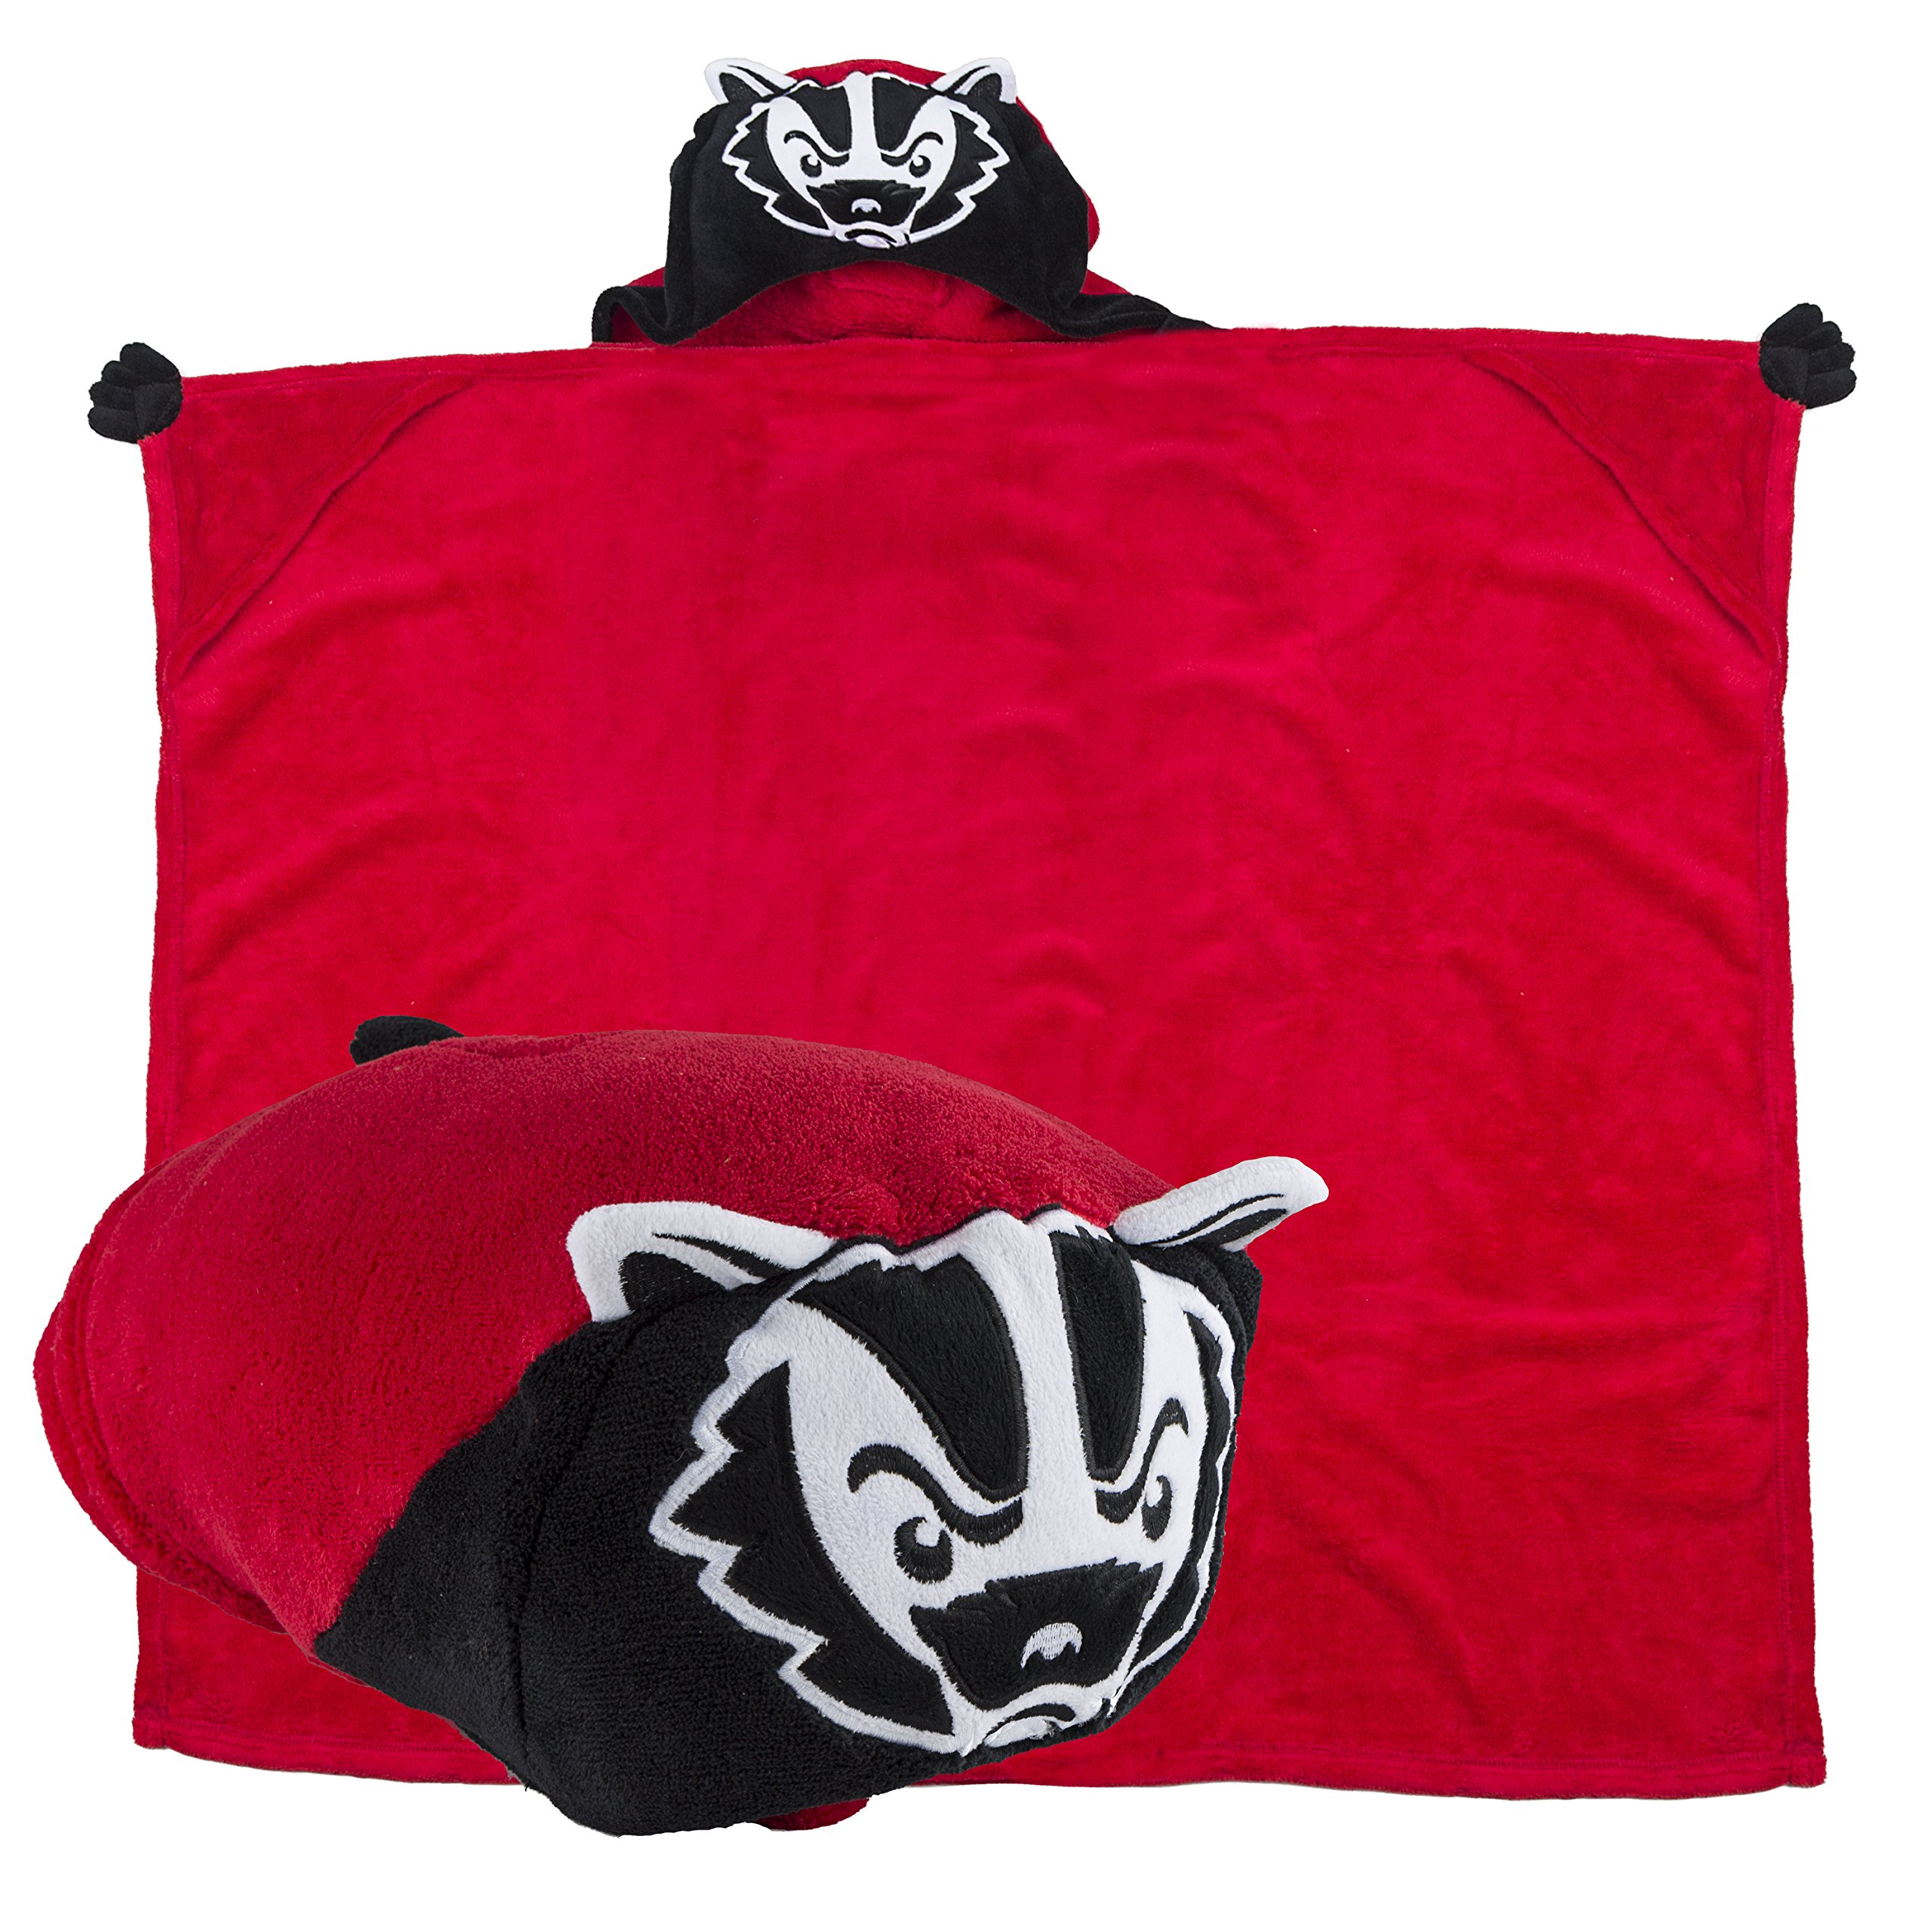 Comfy Critters Stuffed Animal Blanket – College Mascot, University of Wisconsin 'Bucky Badger' – Kids huggable pillow and blanket perfect for the big game, tailgating, pretend play, and much more